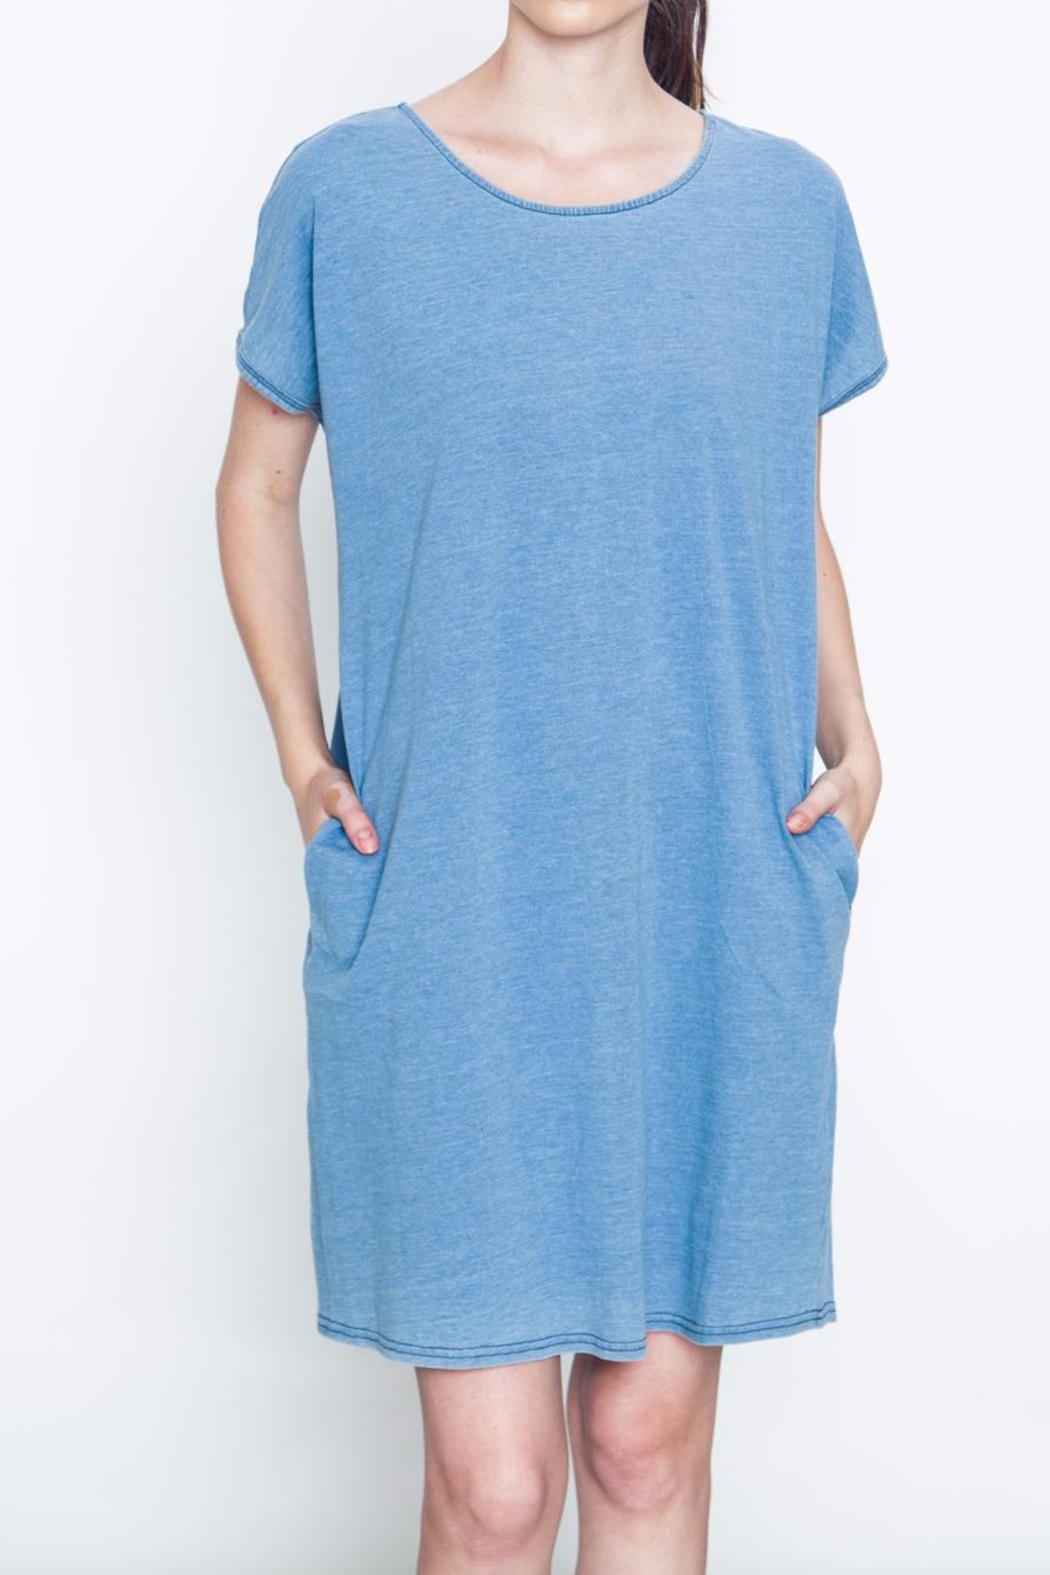 Movint Pocket Knit Dress - Main Image